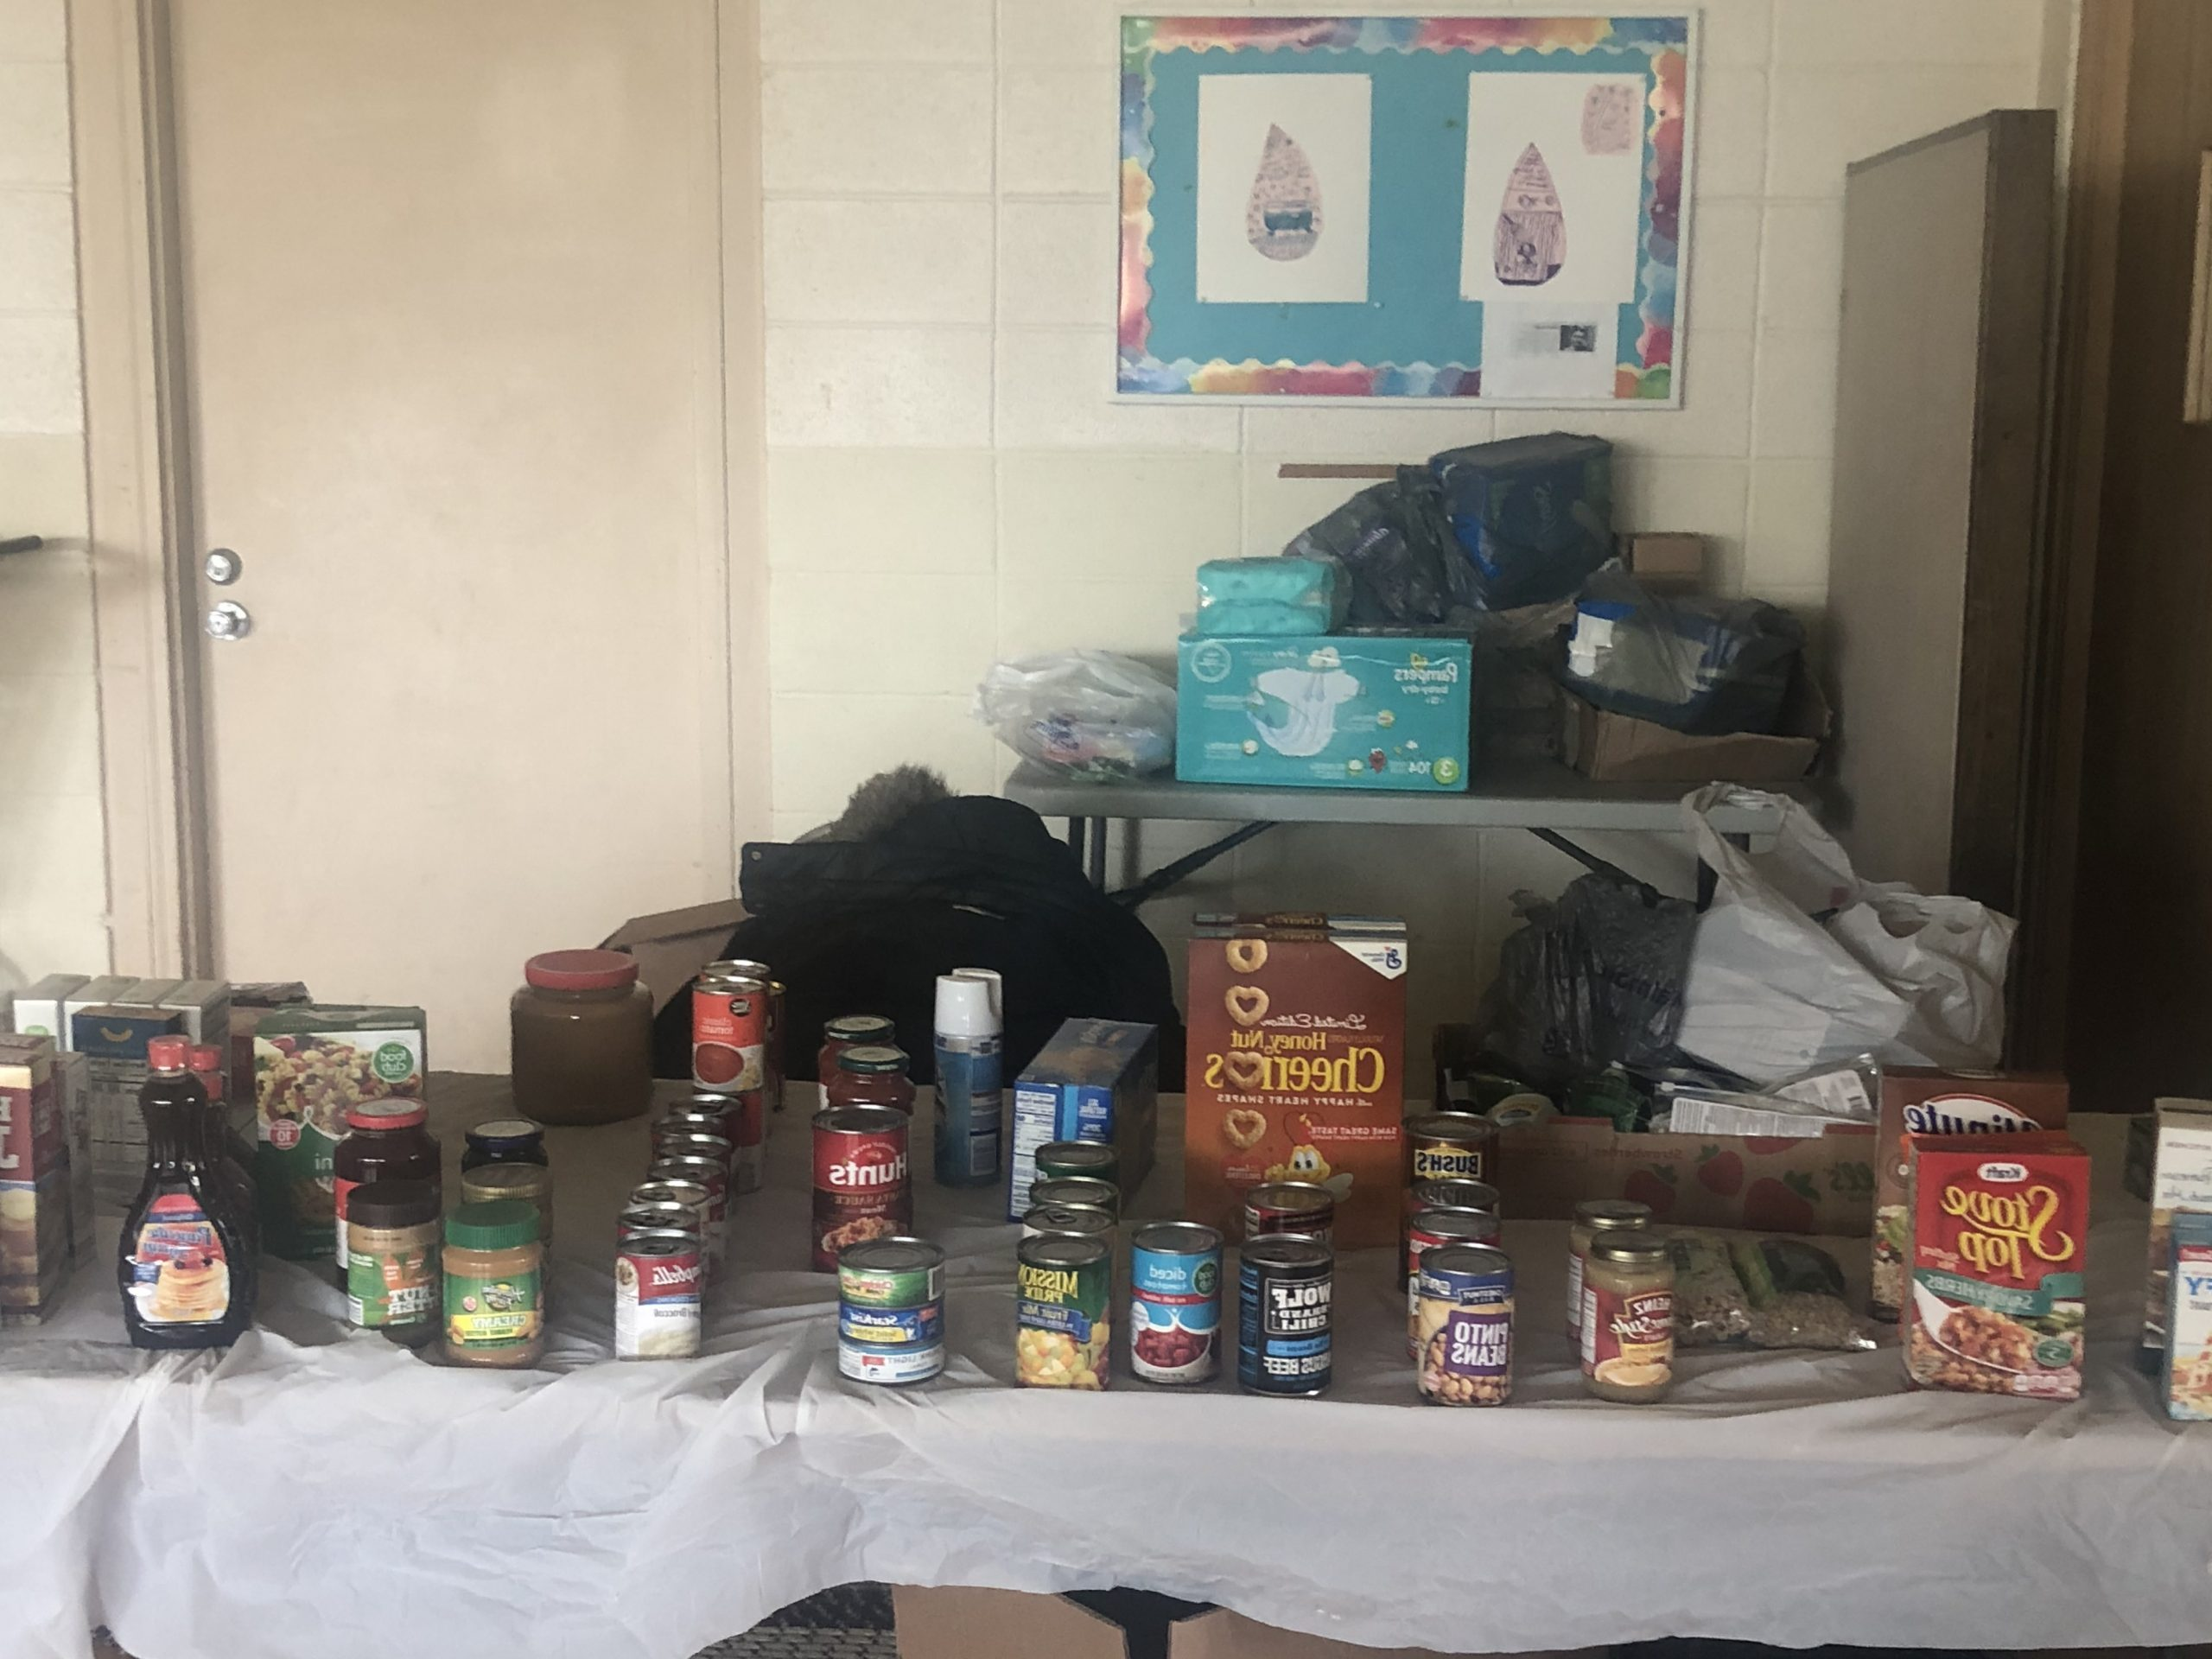 Fellowship hall table with nonperishable food